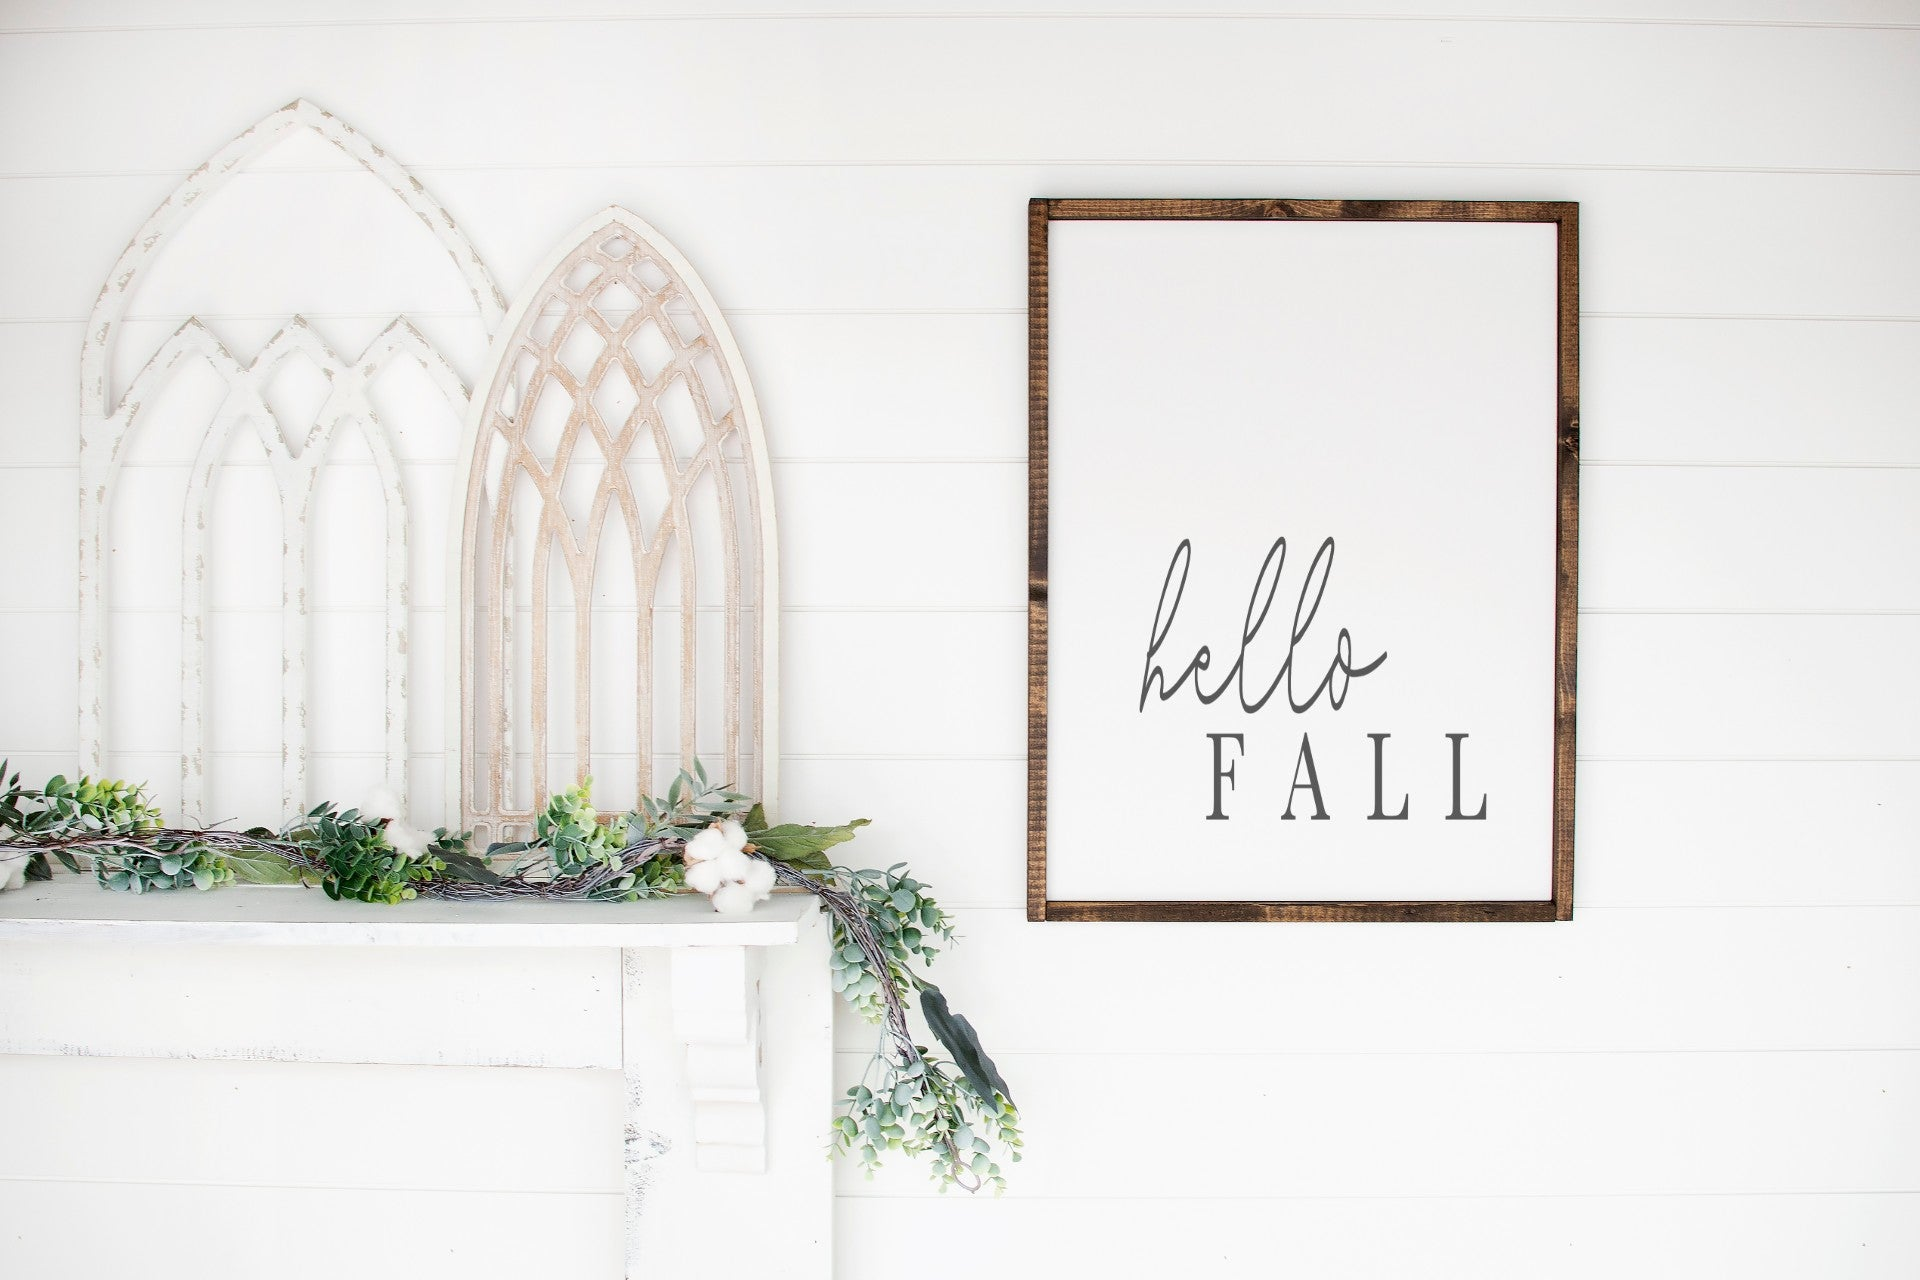 Hello Fall -Farmhouse Wooden Sign